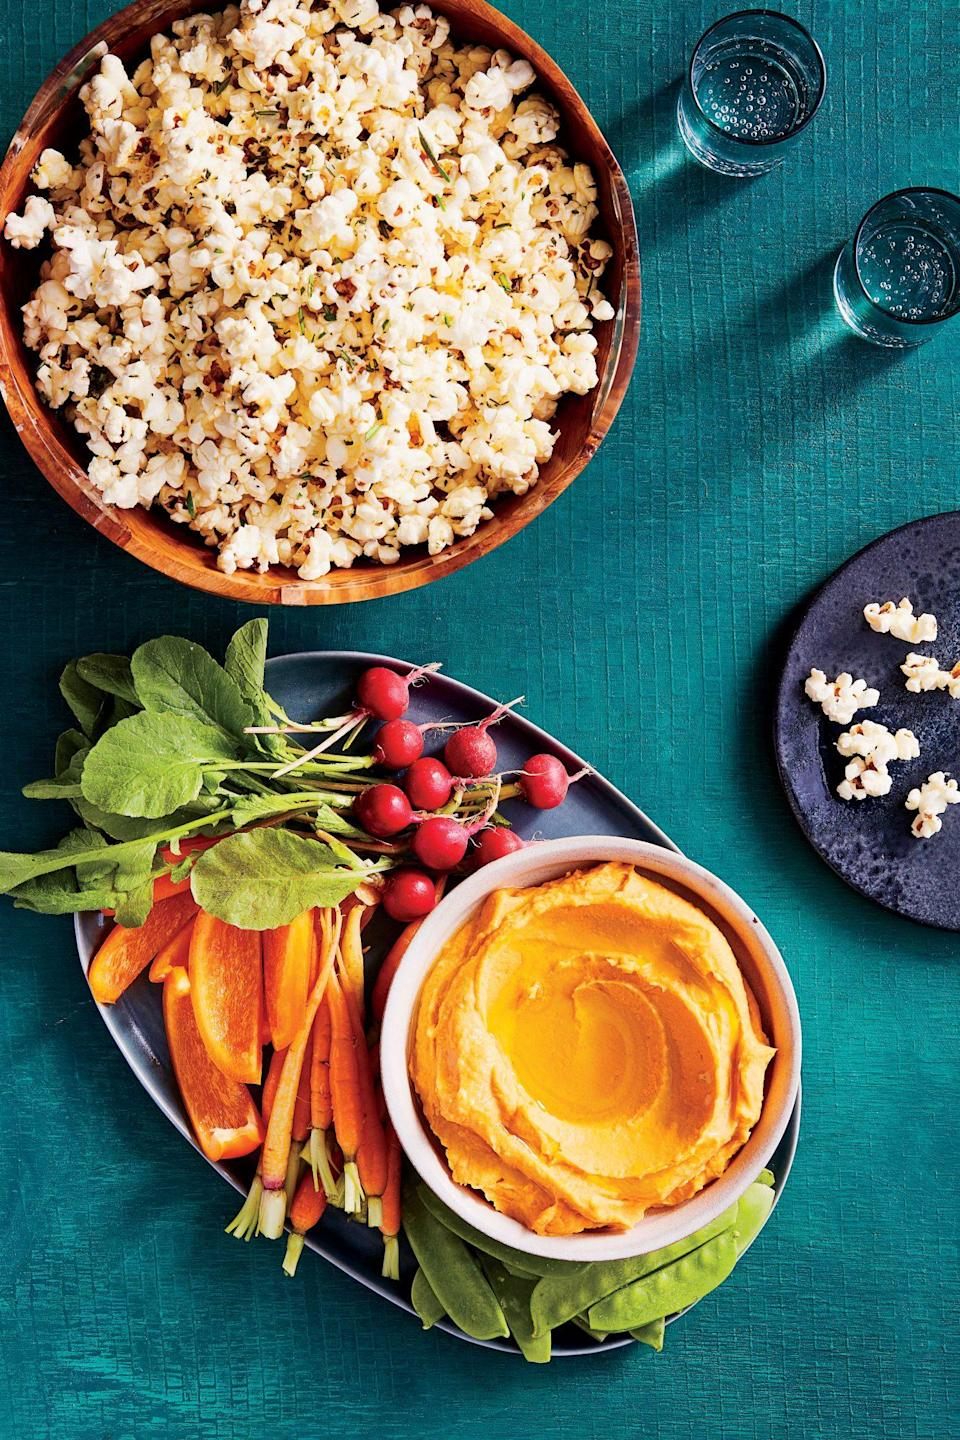 """<p><strong>Recipe: <a href=""""https://www.southernliving.com/recipes/roasted-sweet-potato-hummus-recipe"""" rel=""""nofollow noopener"""" target=""""_blank"""" data-ylk=""""slk:Roasted Sweet Potato Hummus"""" class=""""link rapid-noclick-resp"""">Roasted Sweet Potato Hummus</a></strong></p> <p>Sweet potatoes come together with chickpeas to give this hummus a vibrant color and sweeter flavor. Complete your appetizer by serving with your favorite vegetables and pita chips.</p>"""